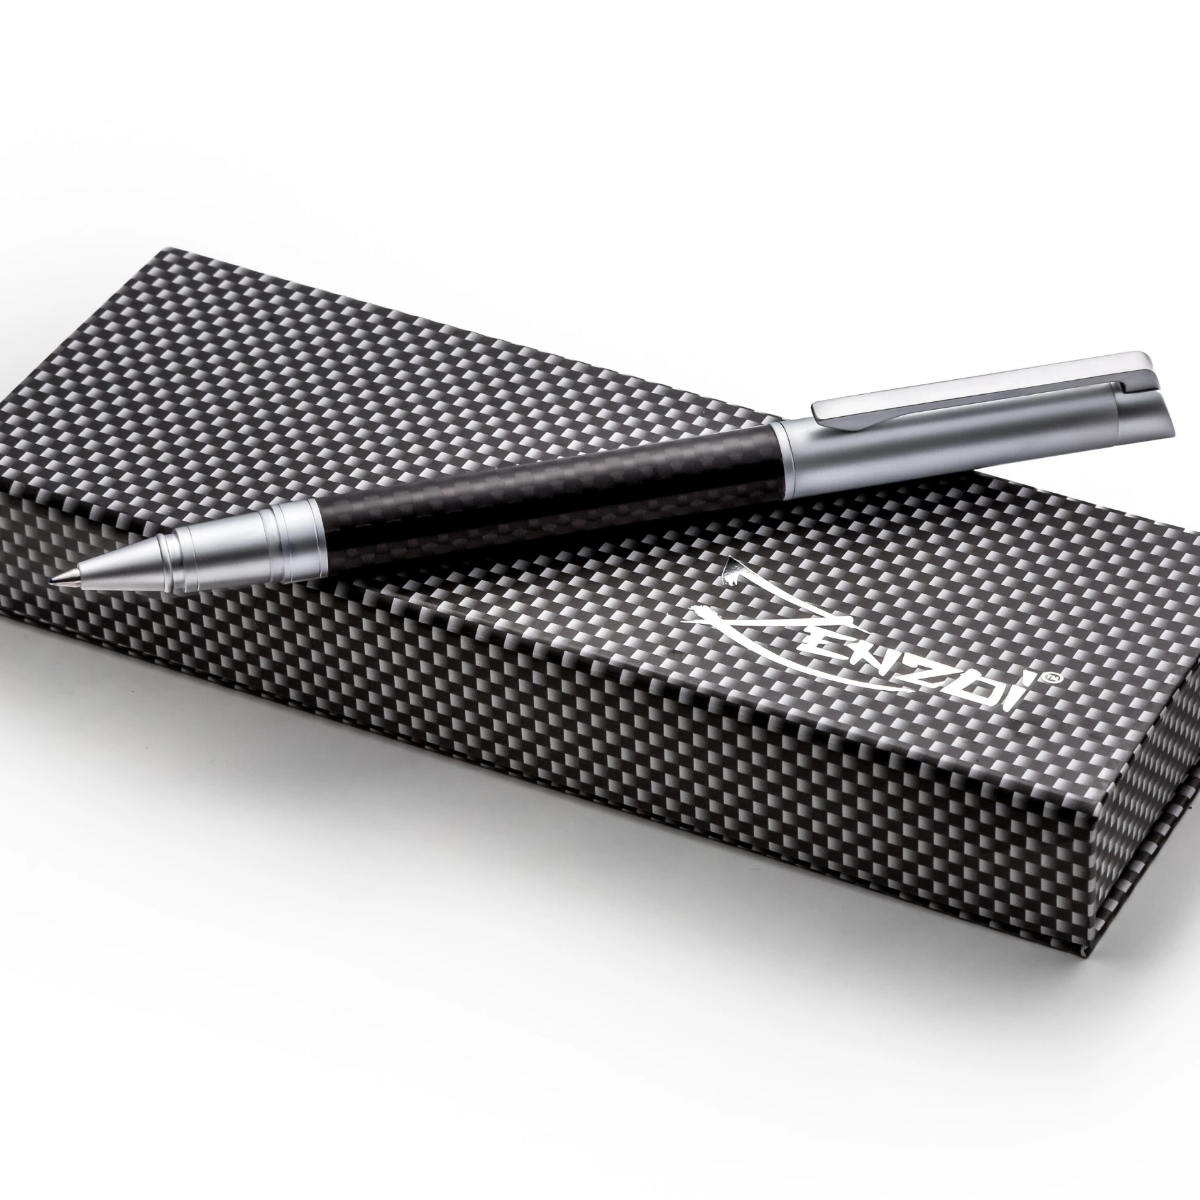 Carbon Fiber Matte Finish Rollerball Pen Set W/ 0.5mm Schneider Ink Refill & Gift Pen Set